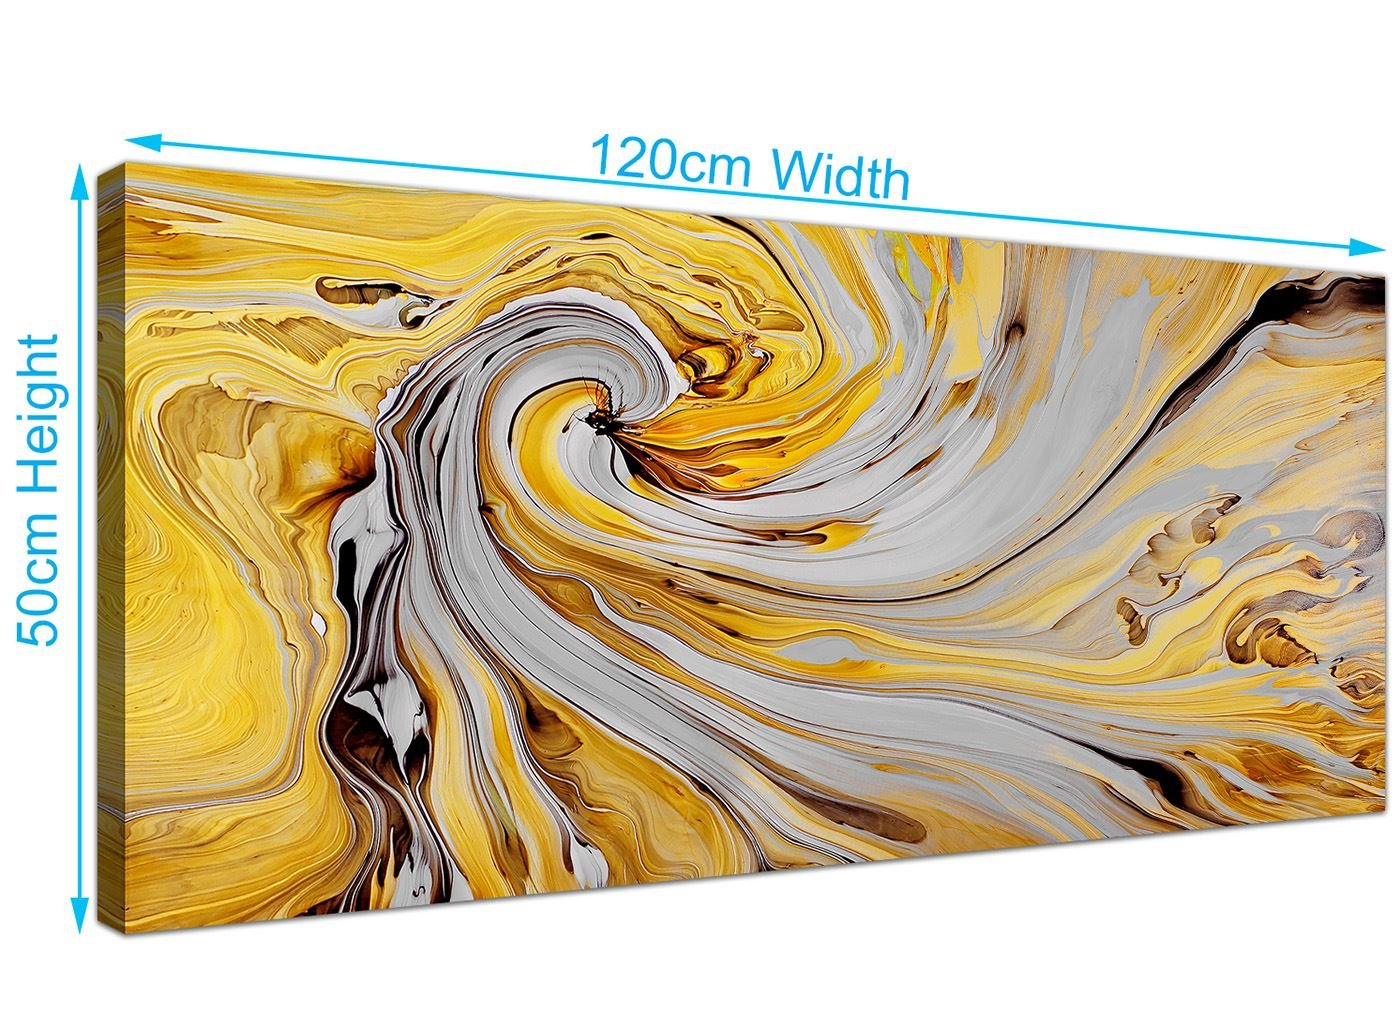 Mustard yellow grey canvas wall art accessories abstract 1290 120cm wide amazon co uk kitchen home